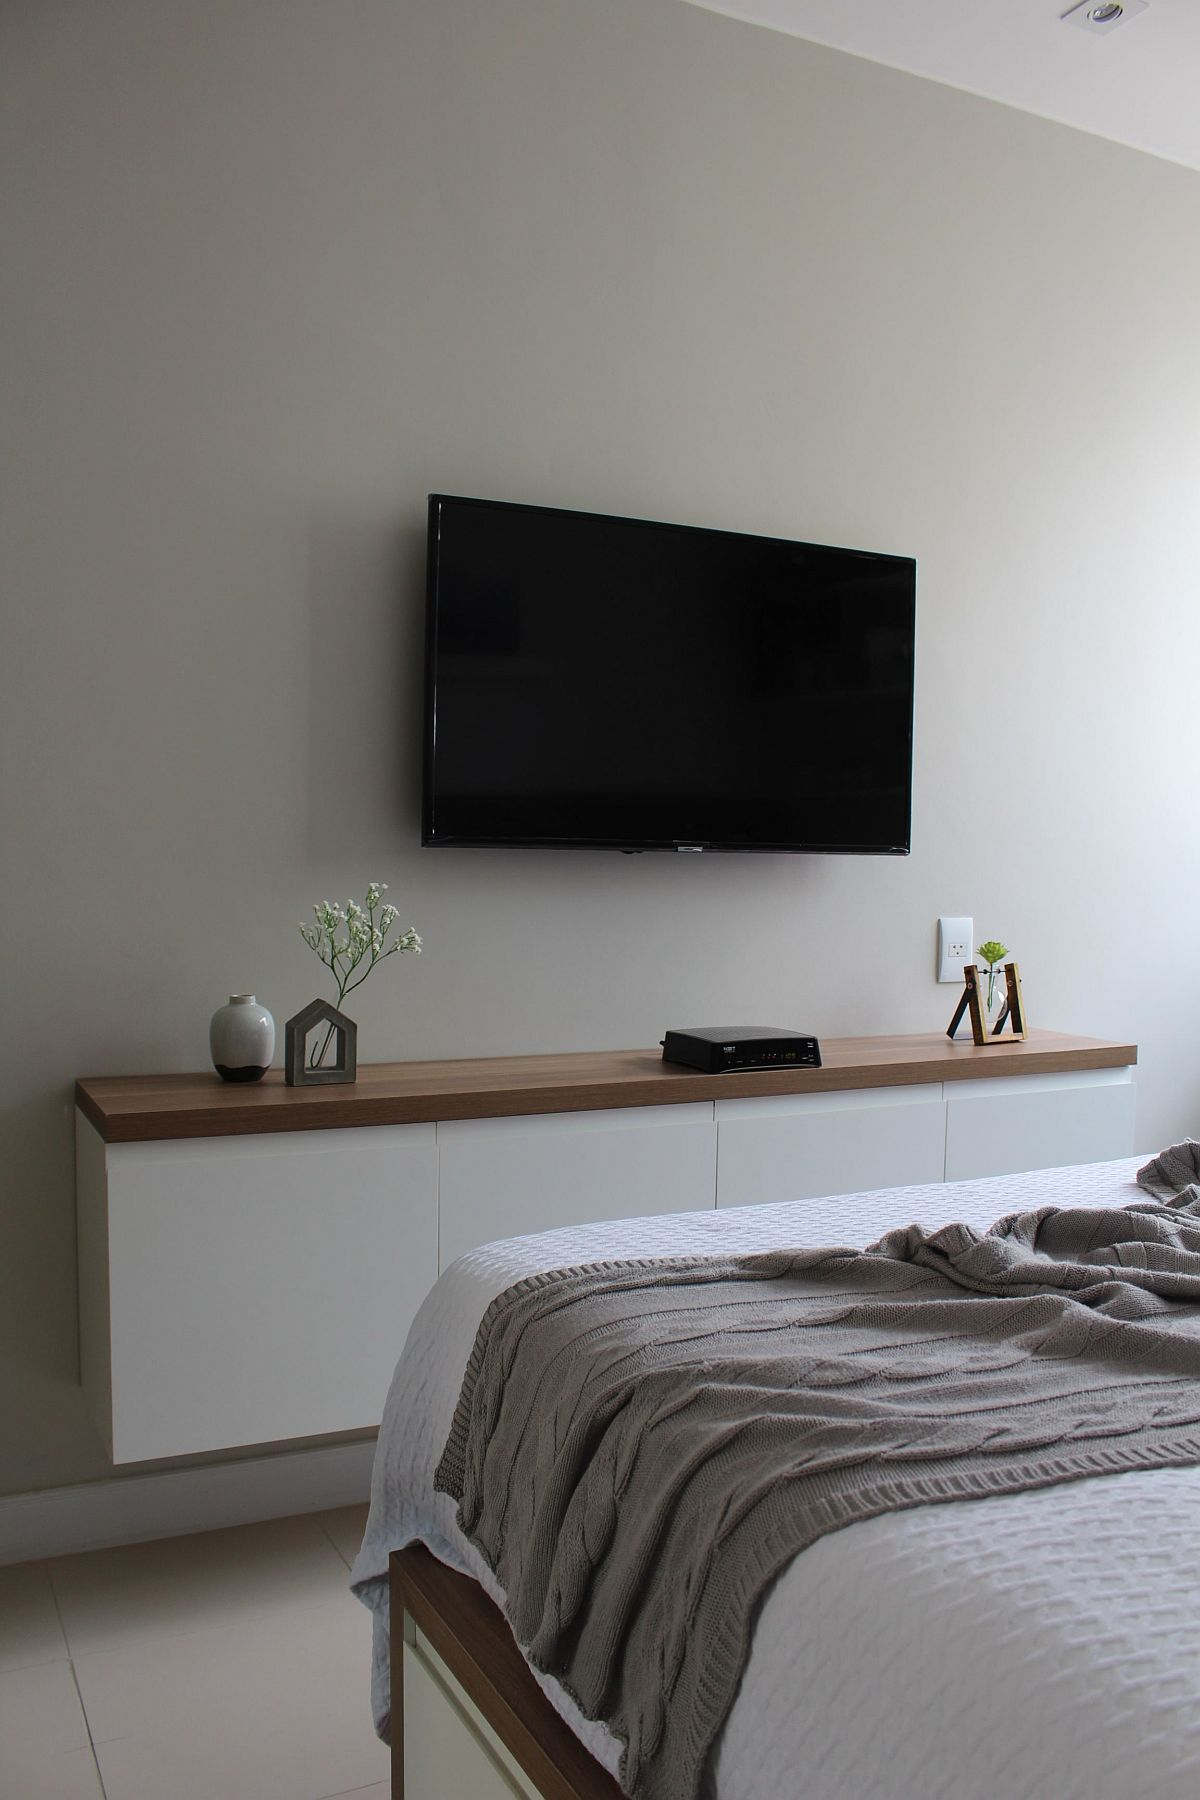 Wall-mounted TV in the bedroom along with a slim storage space below